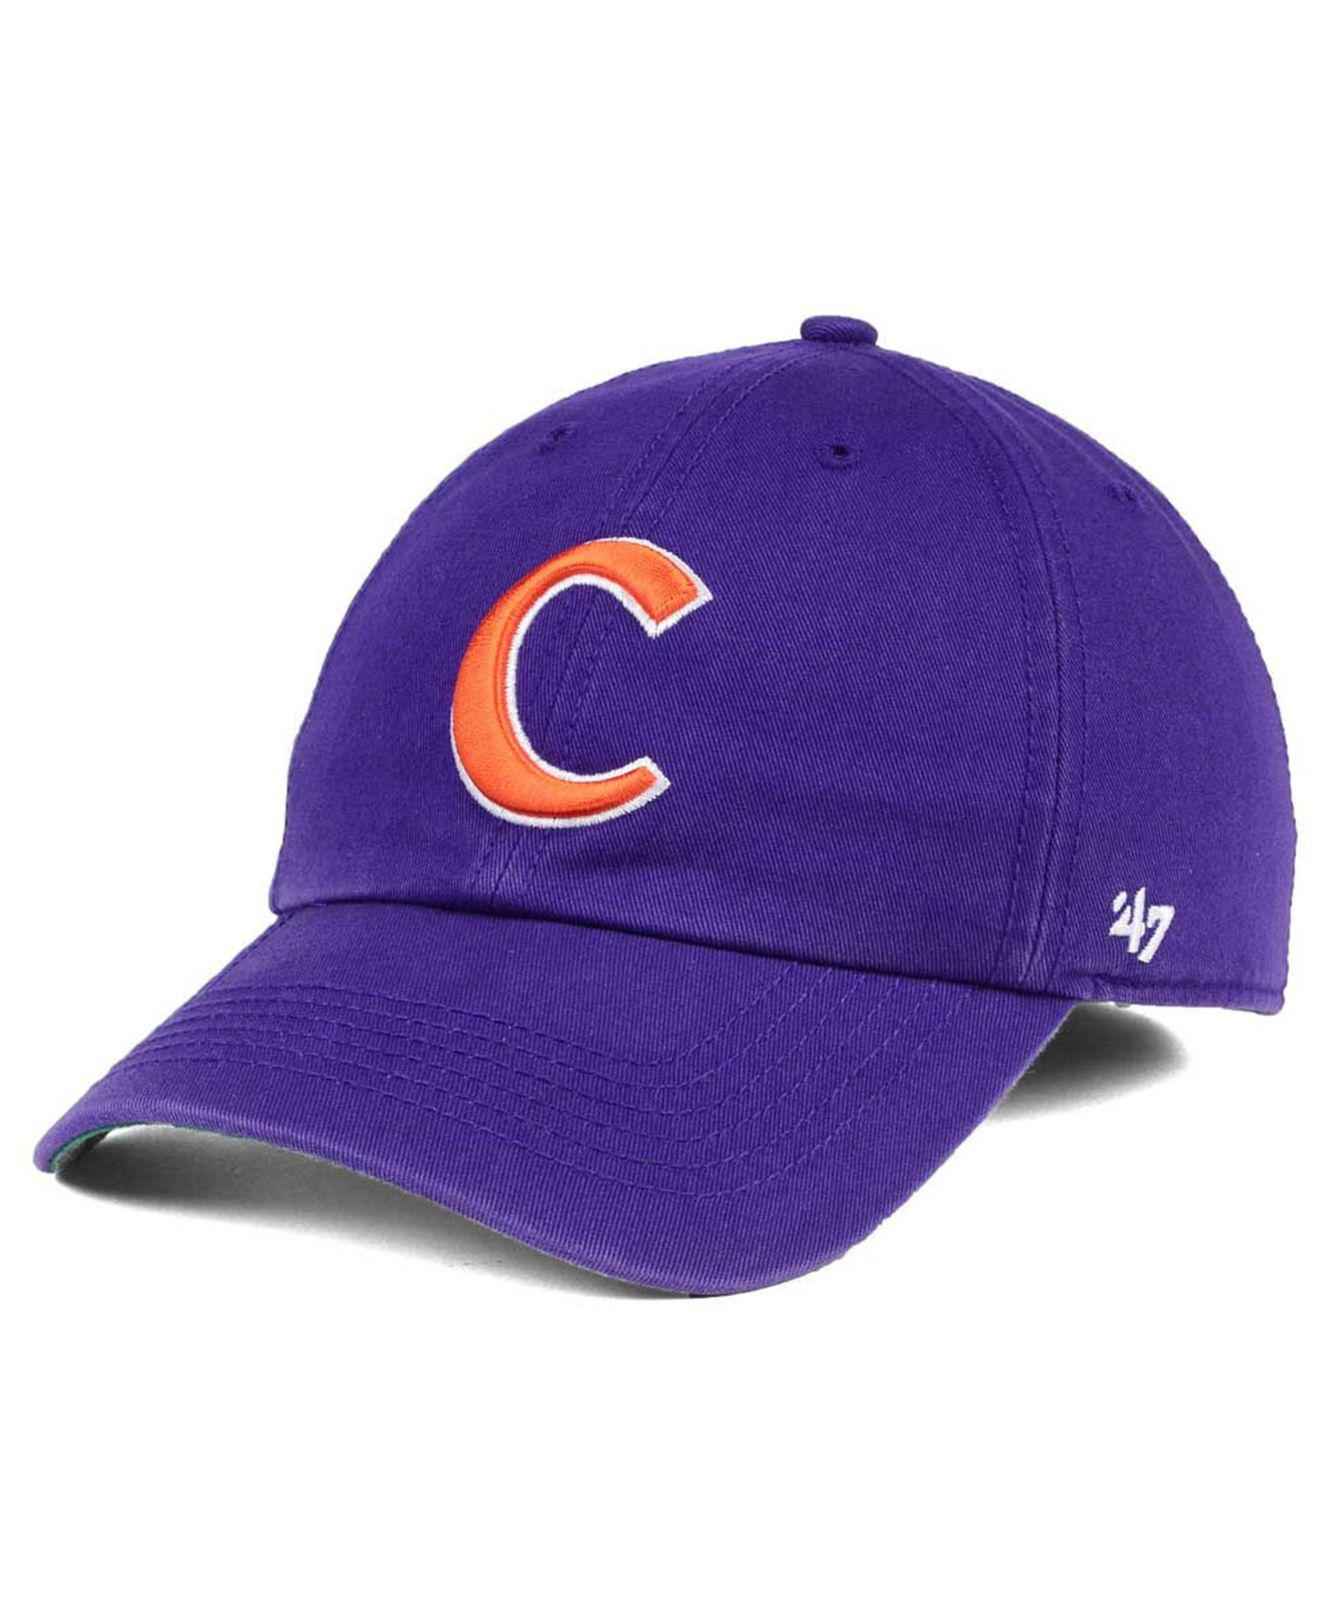 official photos 4eee2 19fb4 Lyst - 47 Brand Clemson Tigers Franchise Cap in Purple for Men